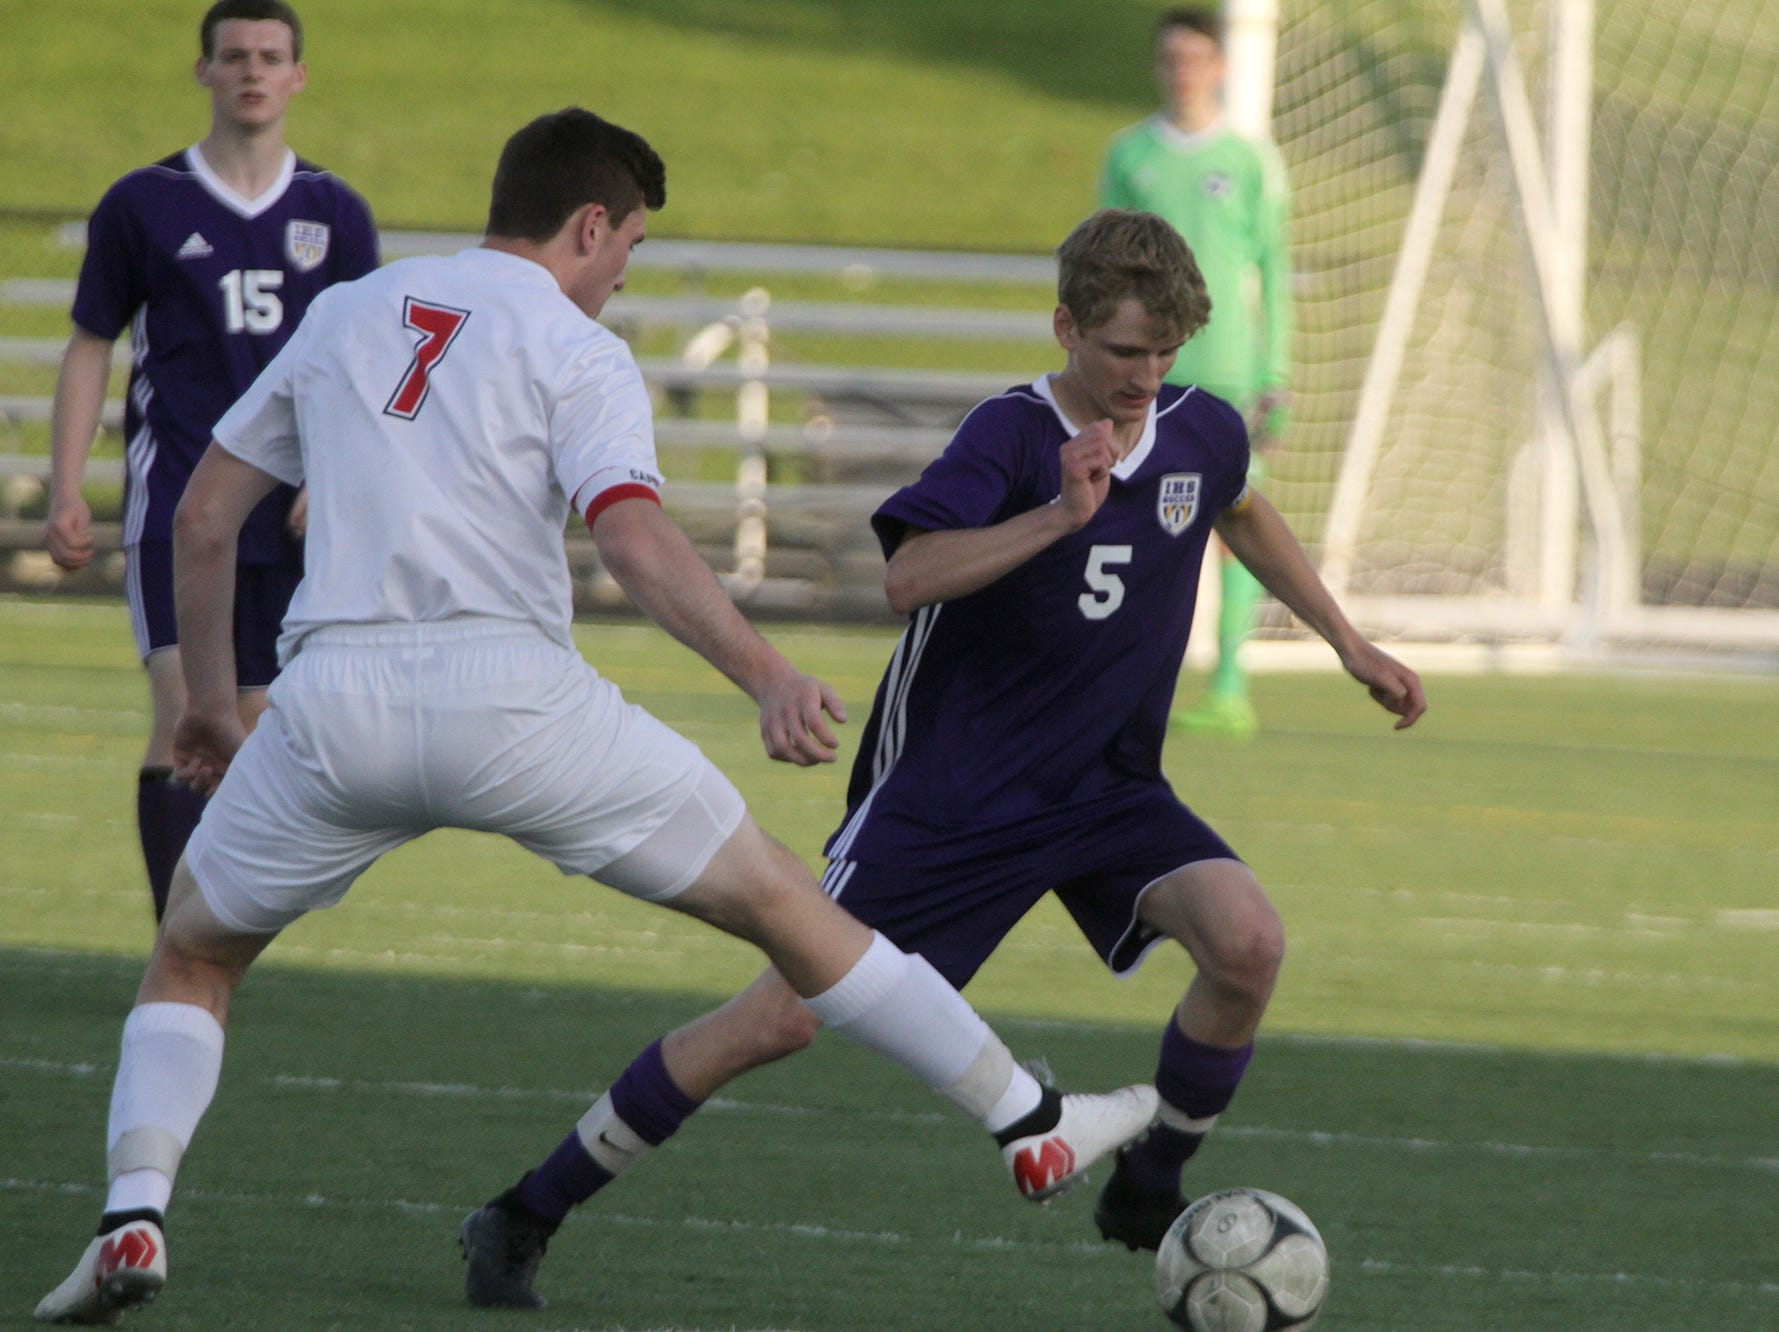 Indianola junior Chandler Lowry goes around Newton senior Jacob Murphy. Indianola beat Newton 2-0 at home in a Little Hawkeye Conference game.